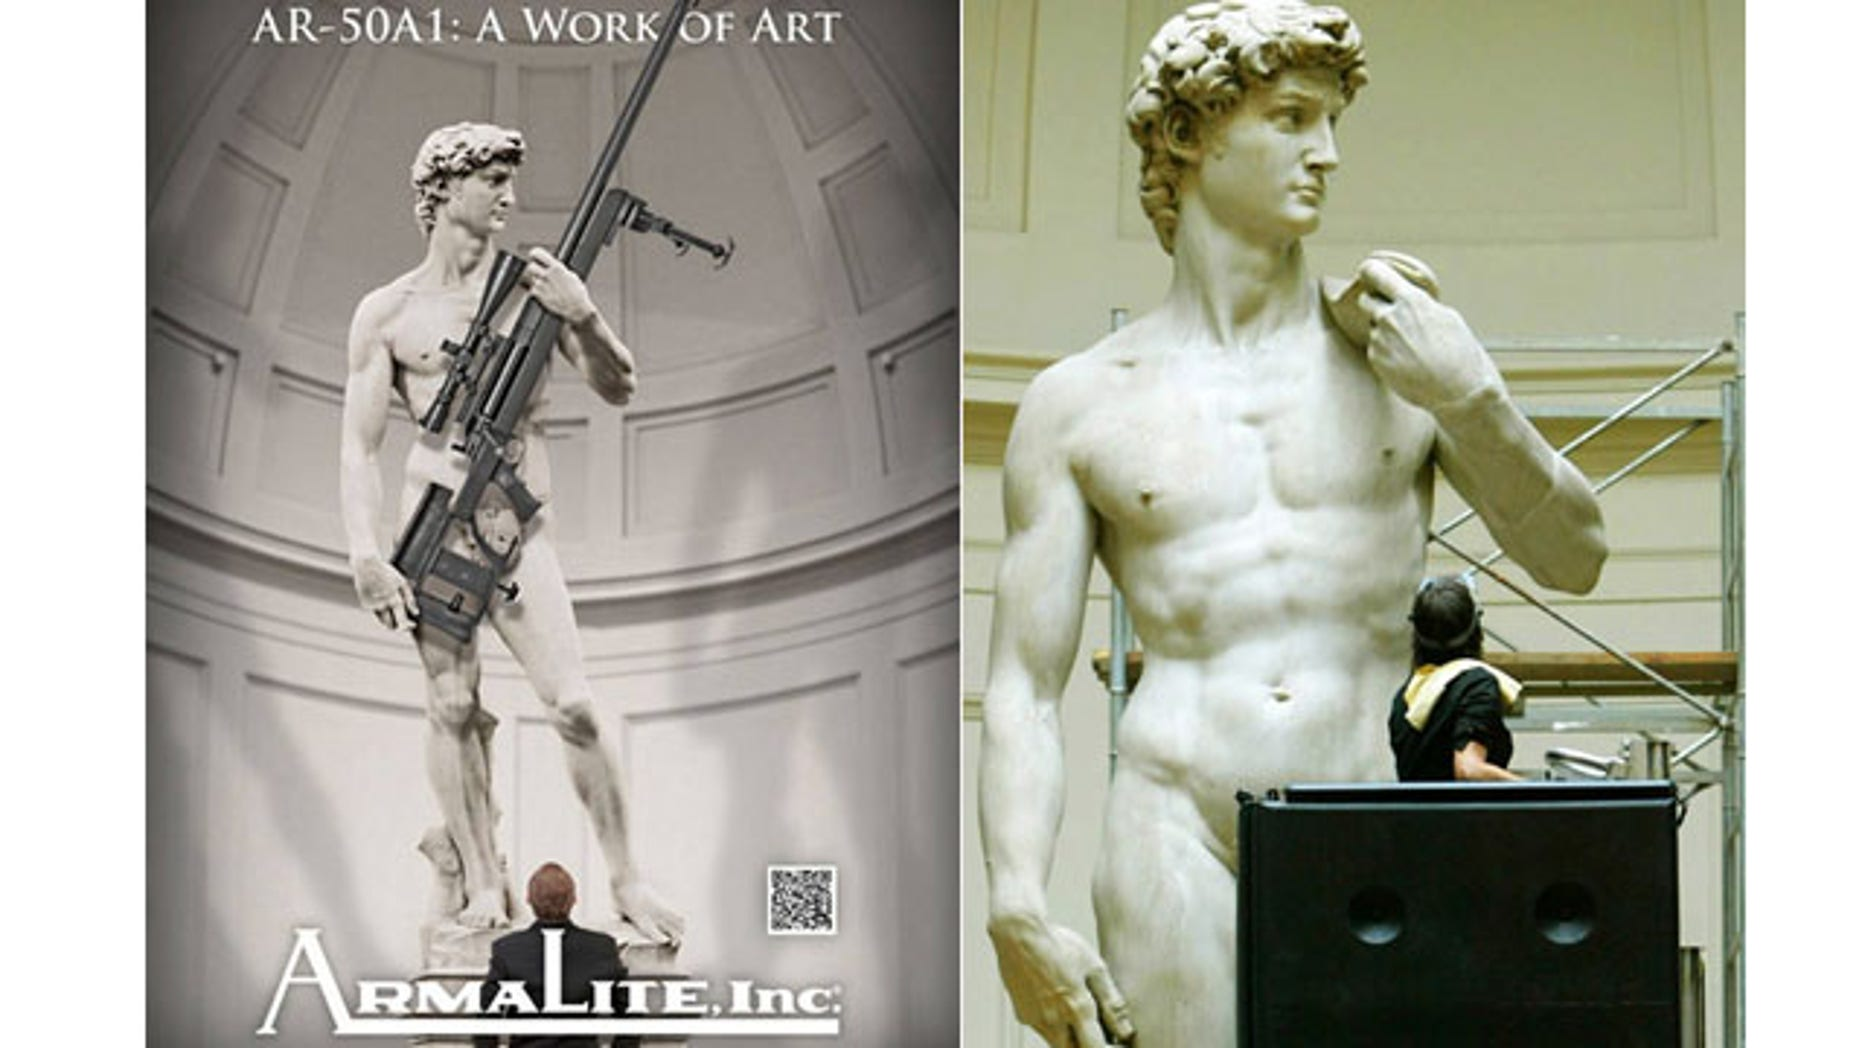 A tale of two Davids: The controversial Armalite ad, left, and the real David undergoing restoration (Armalite/Reuters)